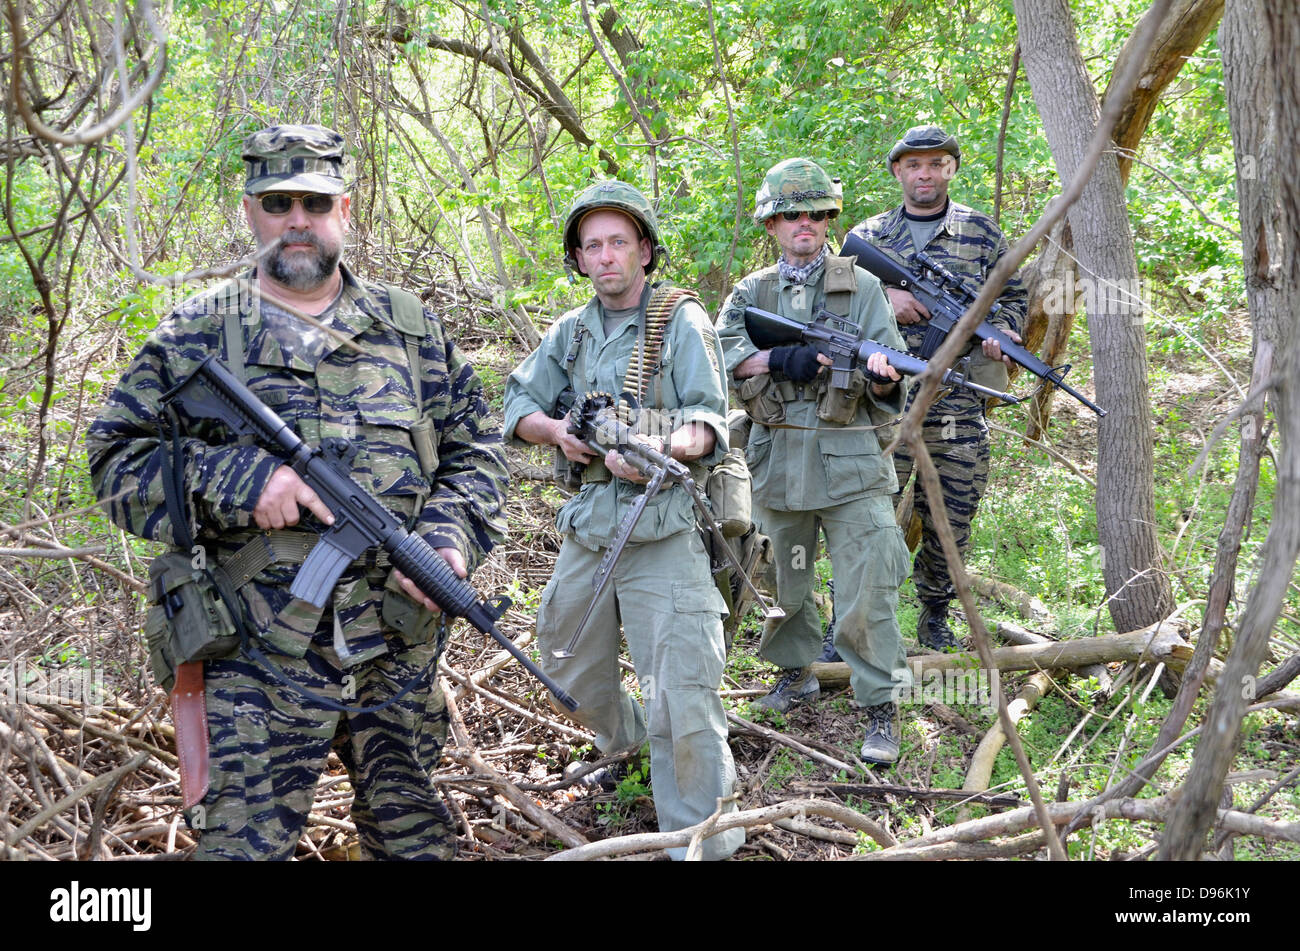 Us soldiers patrol in woods during a reenactment of the vietnam us soldiers patrol in woods during a reenactment of the vietnam war sciox Image collections